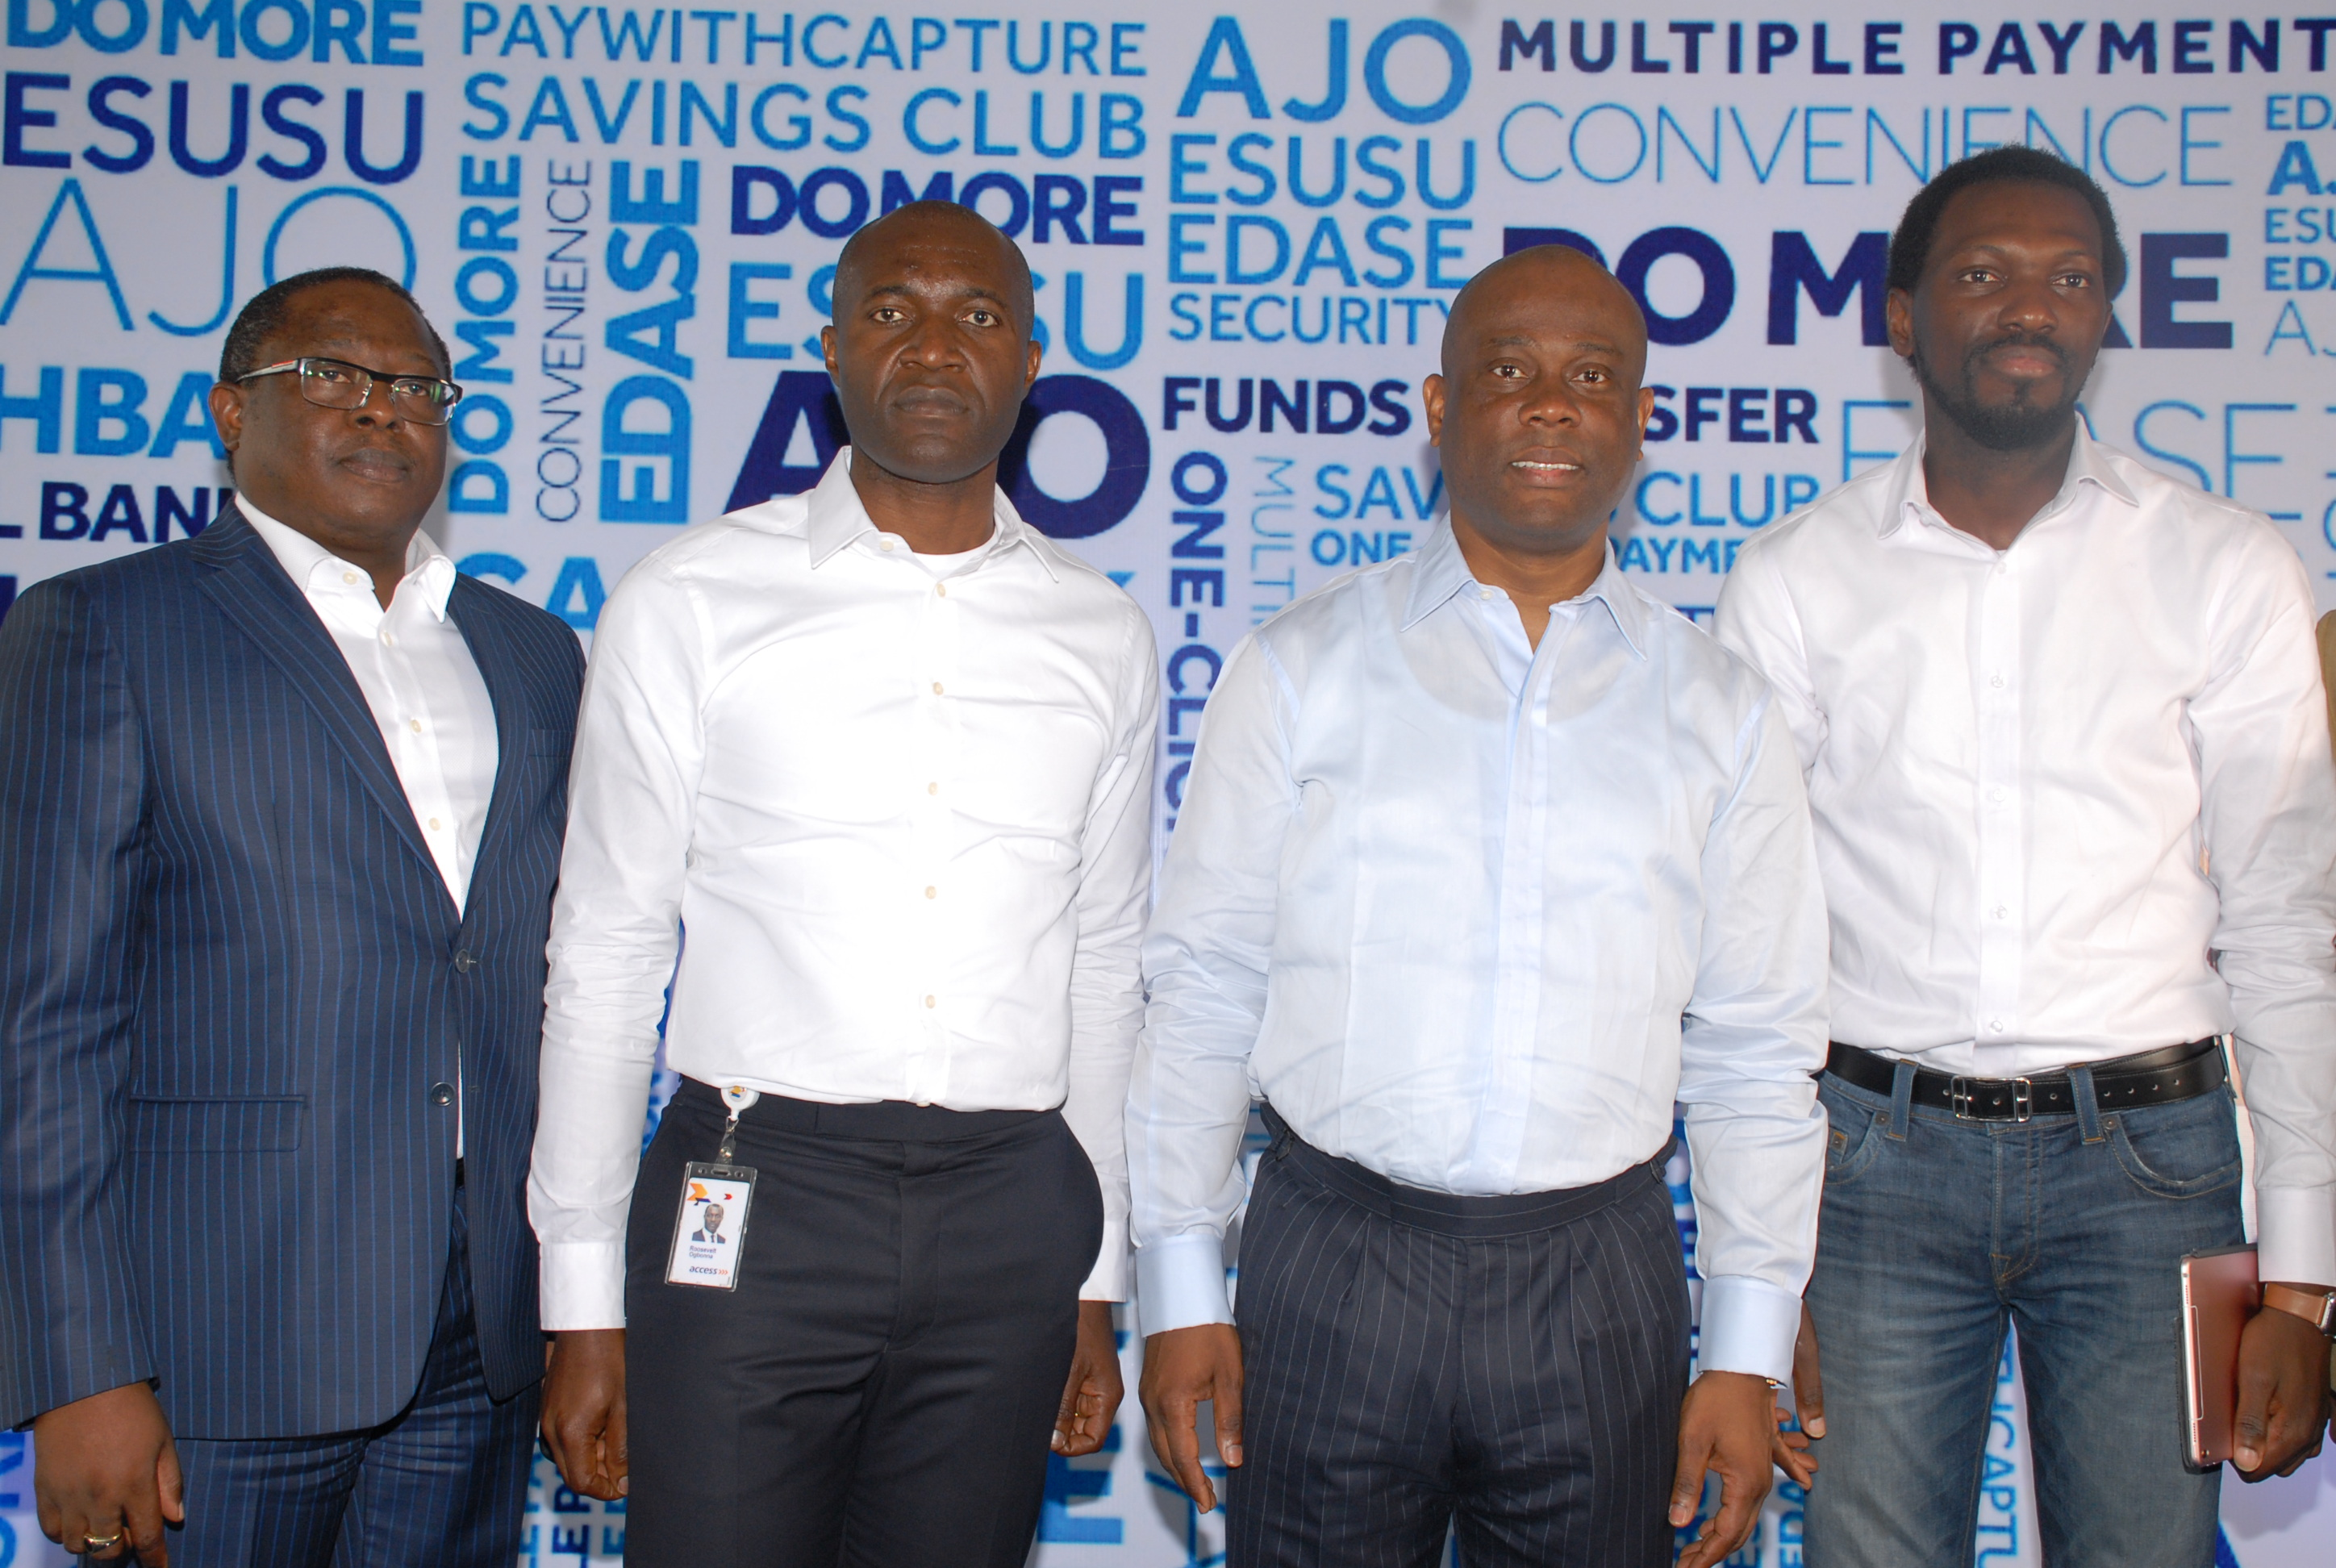 L-R: Executive Director, Personal Banking Division, Access Bank Plc, Victor Etuokwu; Executive Director, Commercial Banking Division, Access Bank Plc, Roosevelt Ogbonna; Group Managing Director, Access Bank Plc, Herbert Wigwe and Head, Digital Factory and Innovation, Access Bank Plc, Olugbenga Agboola at the launch of the Bank's upgraded lifestyle solution, PayWIthCapture5.0 at the Civic Center yesterday.